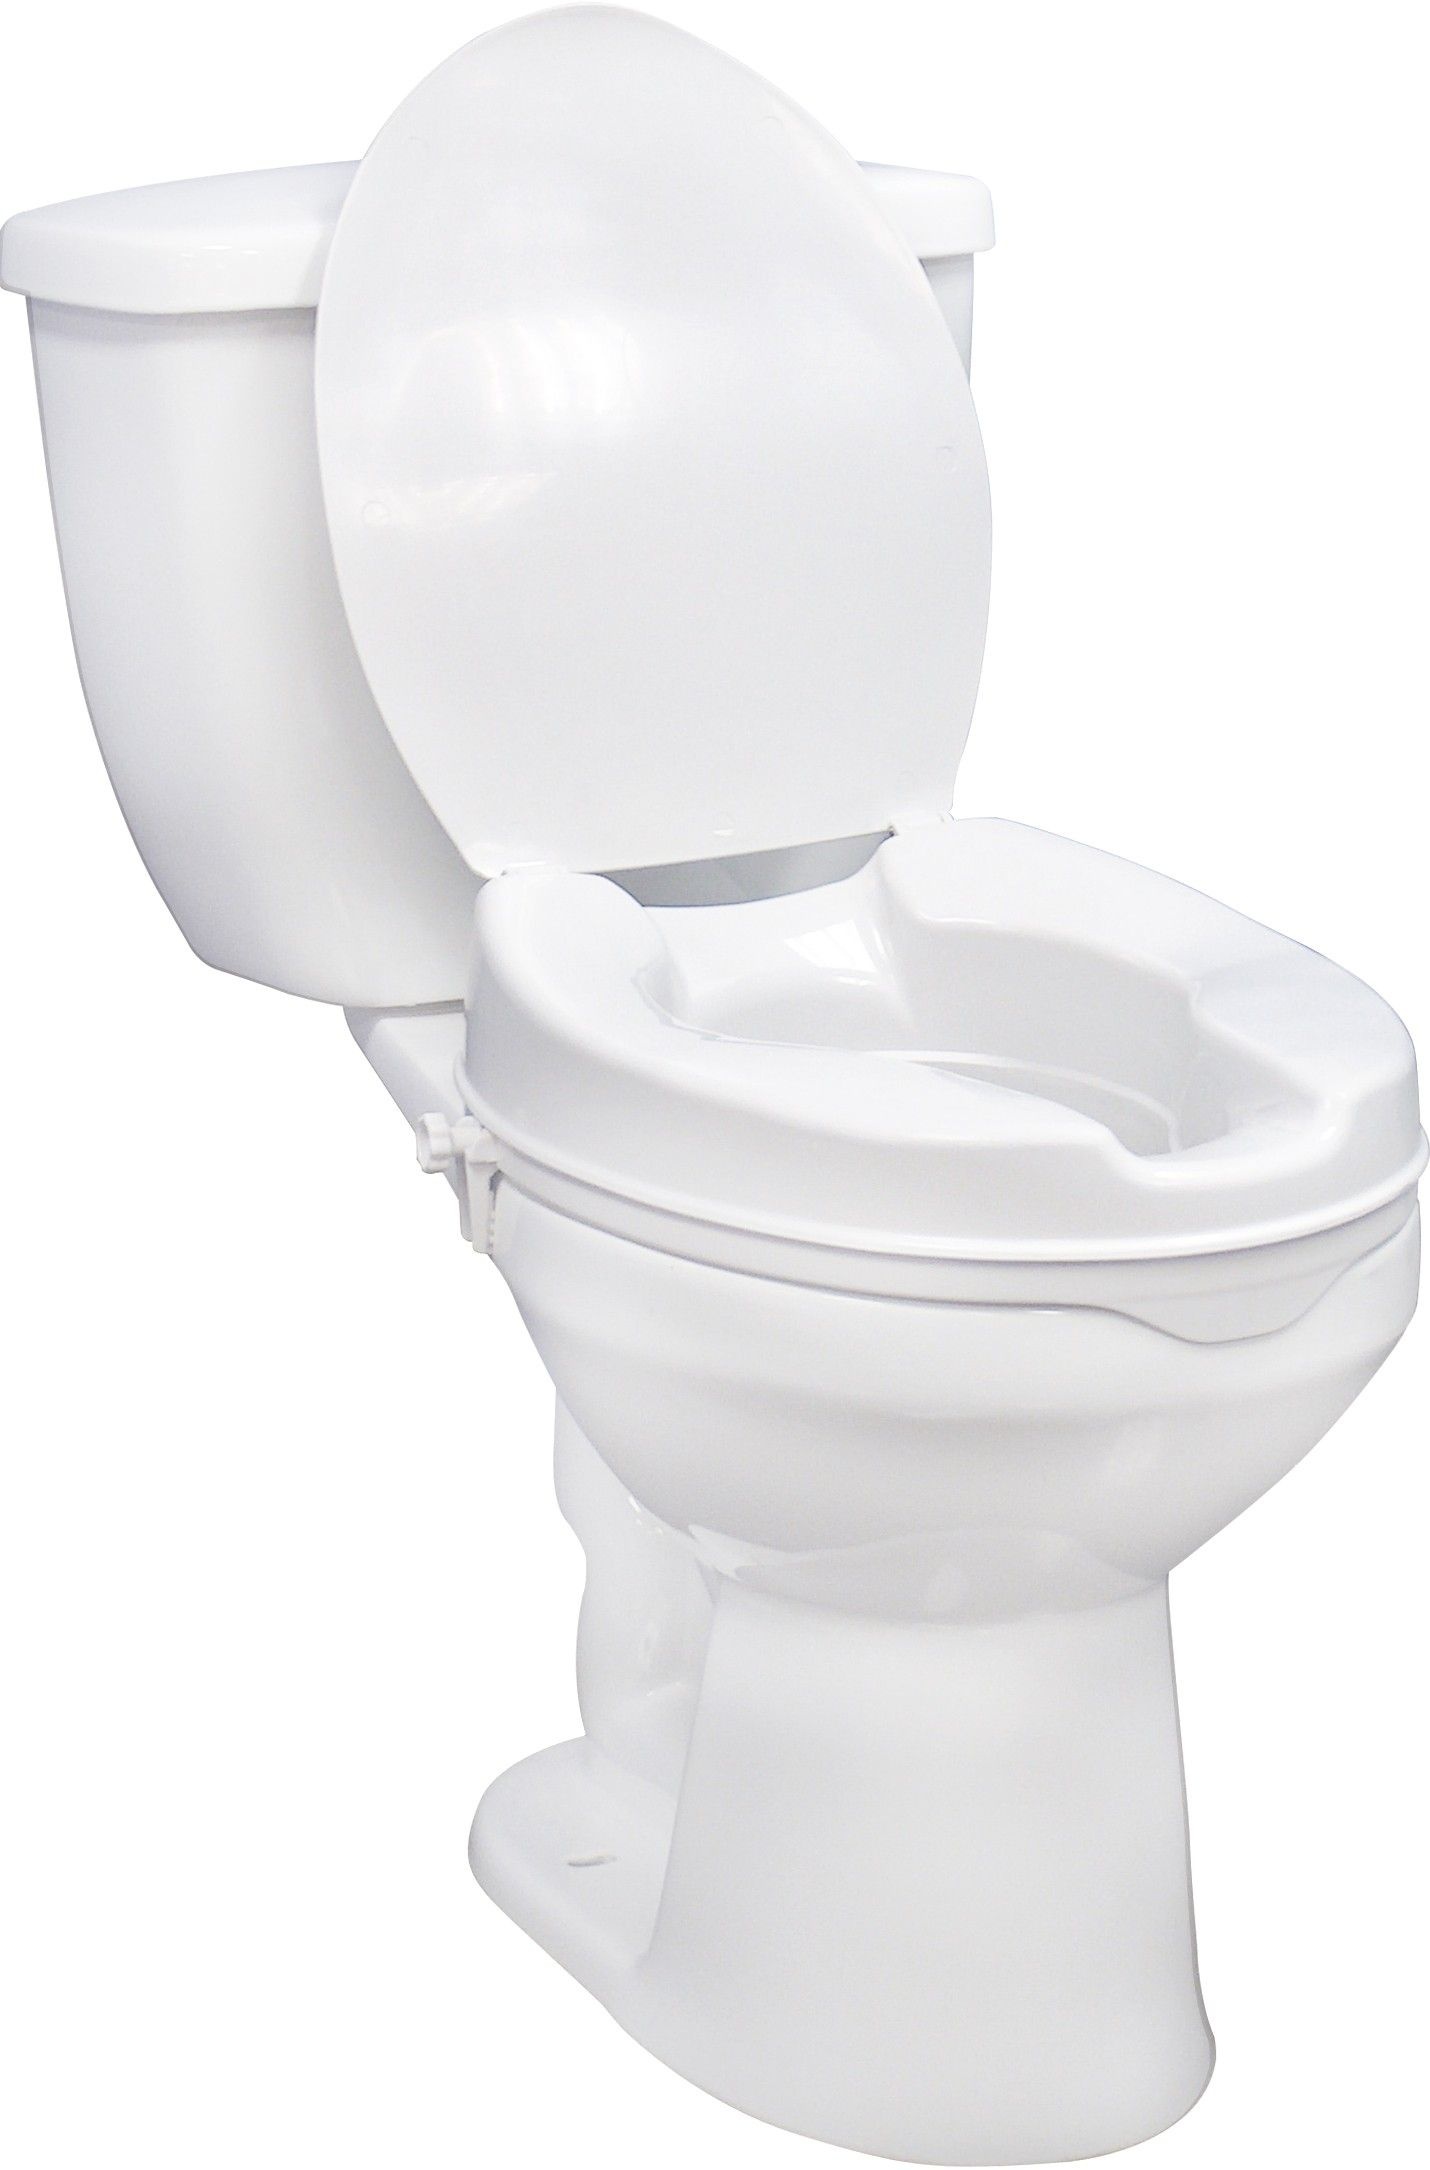 This Raised Toilet Seat With Lid Is Designed To Increase The